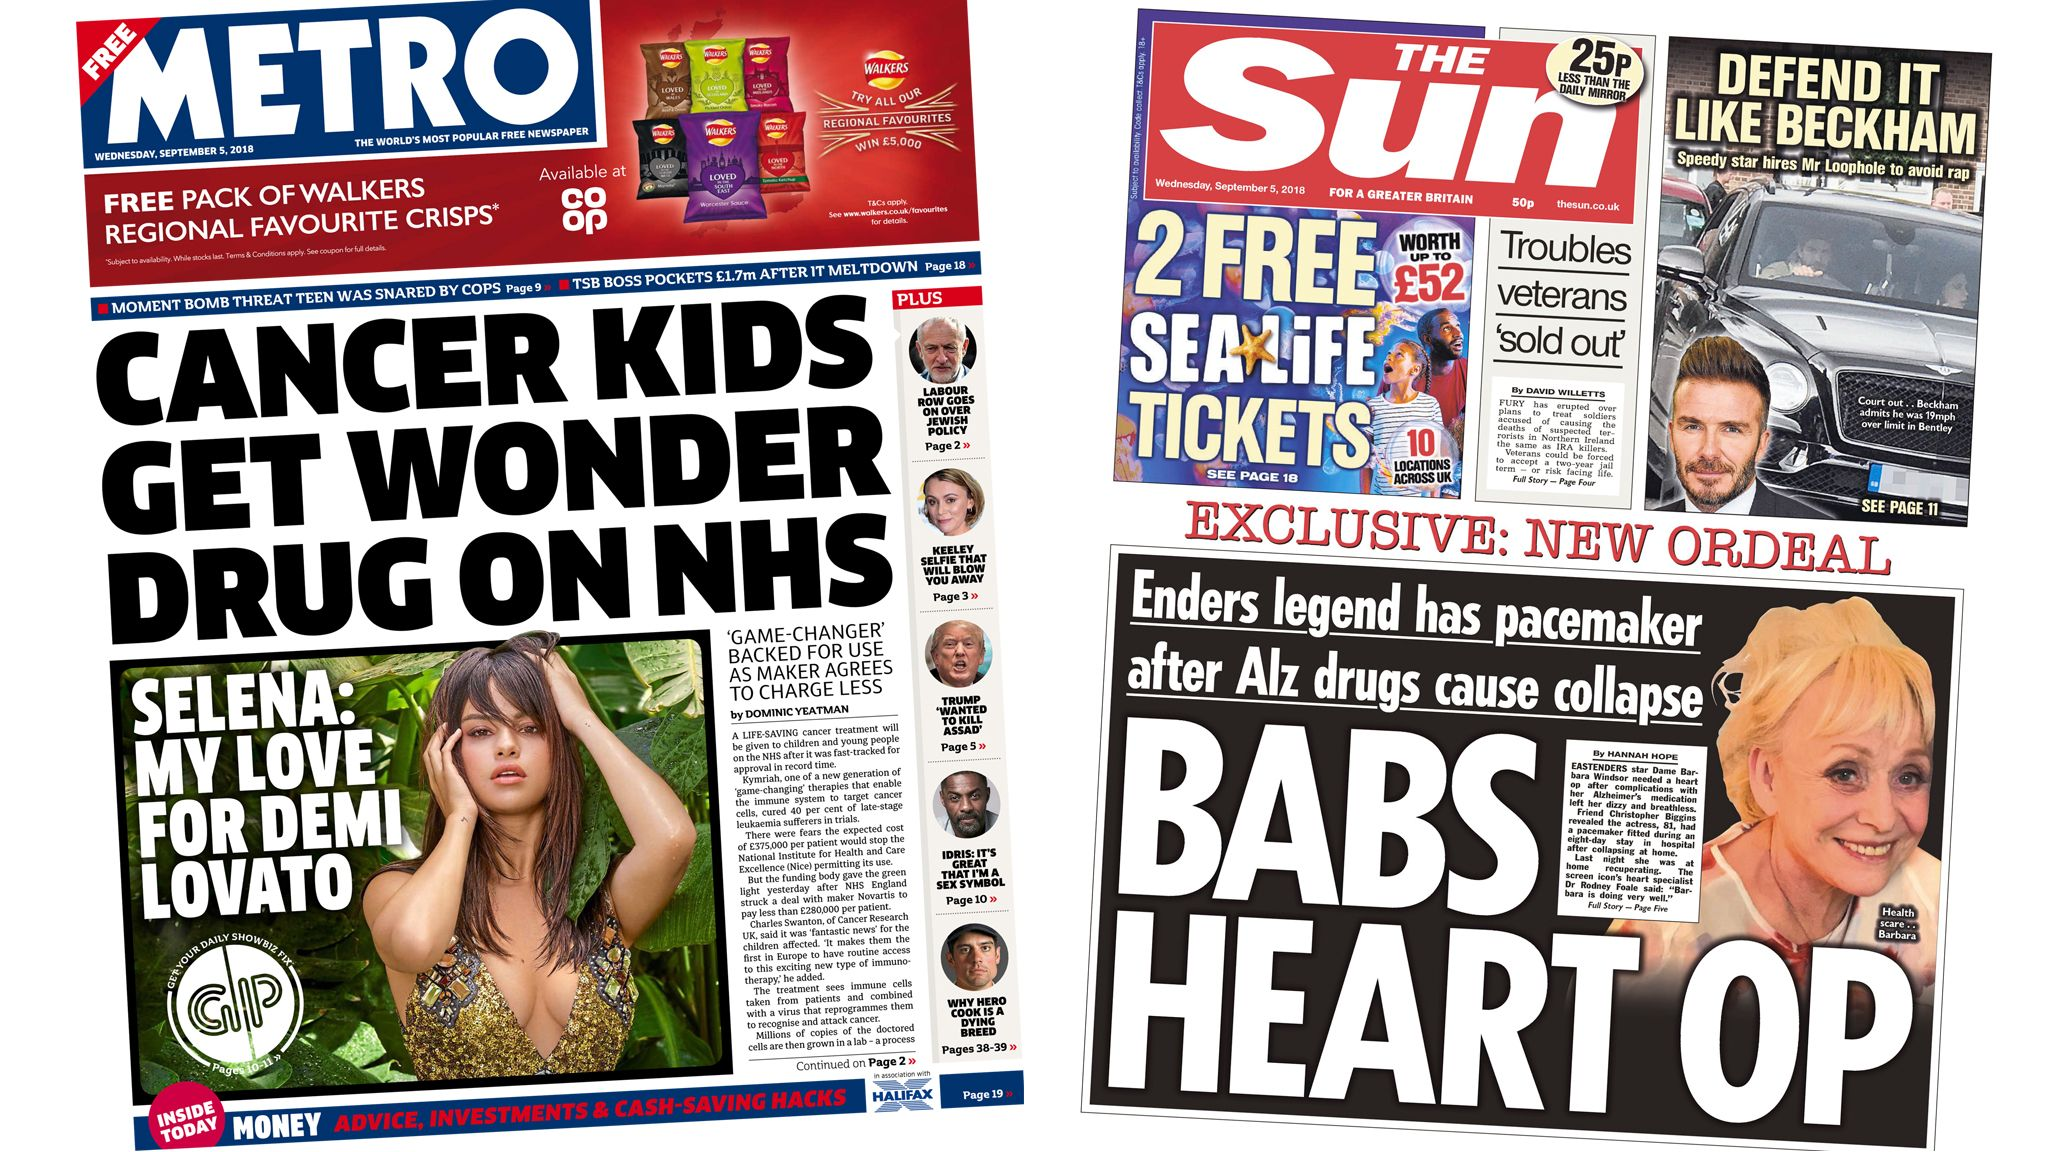 Metro and Sun front pages - 05/09/18